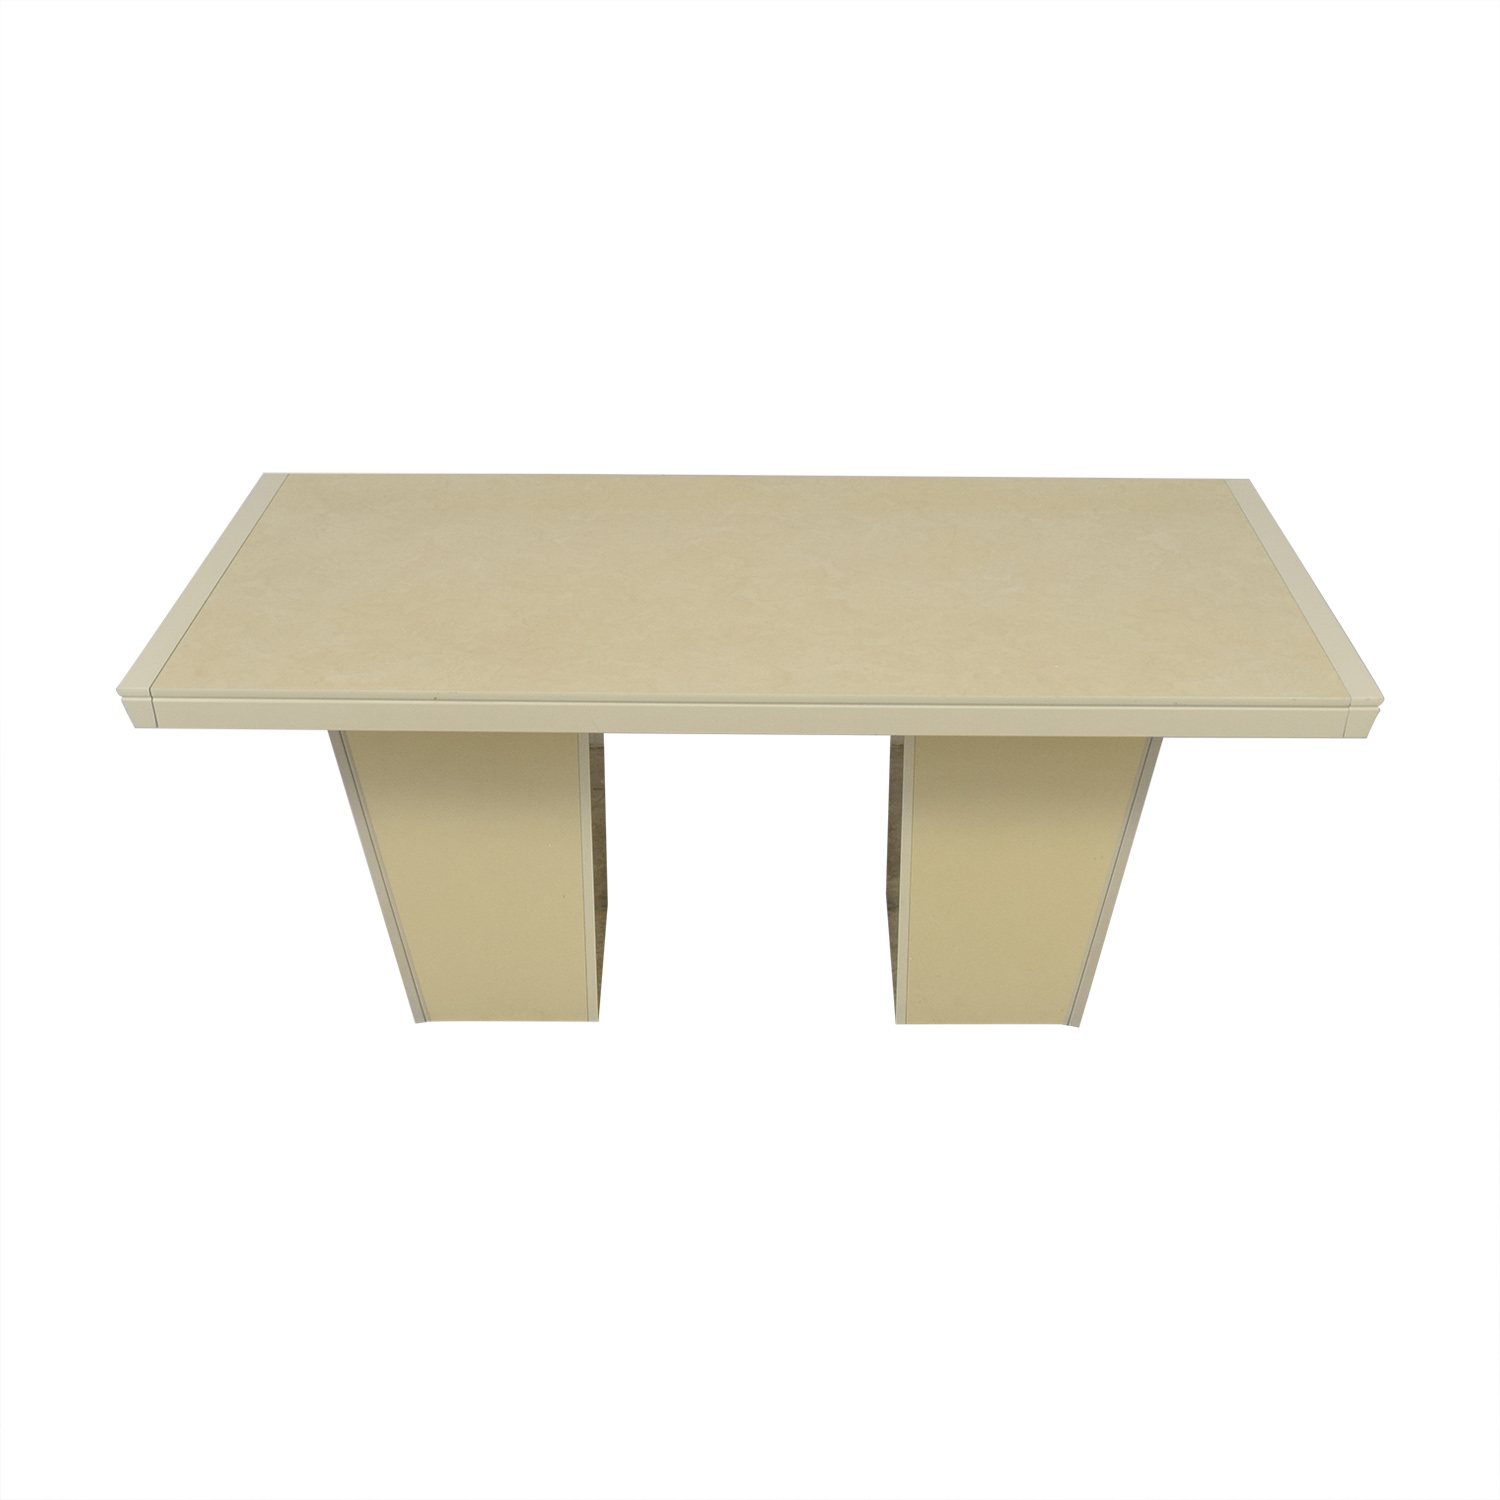 Dining Room Table price